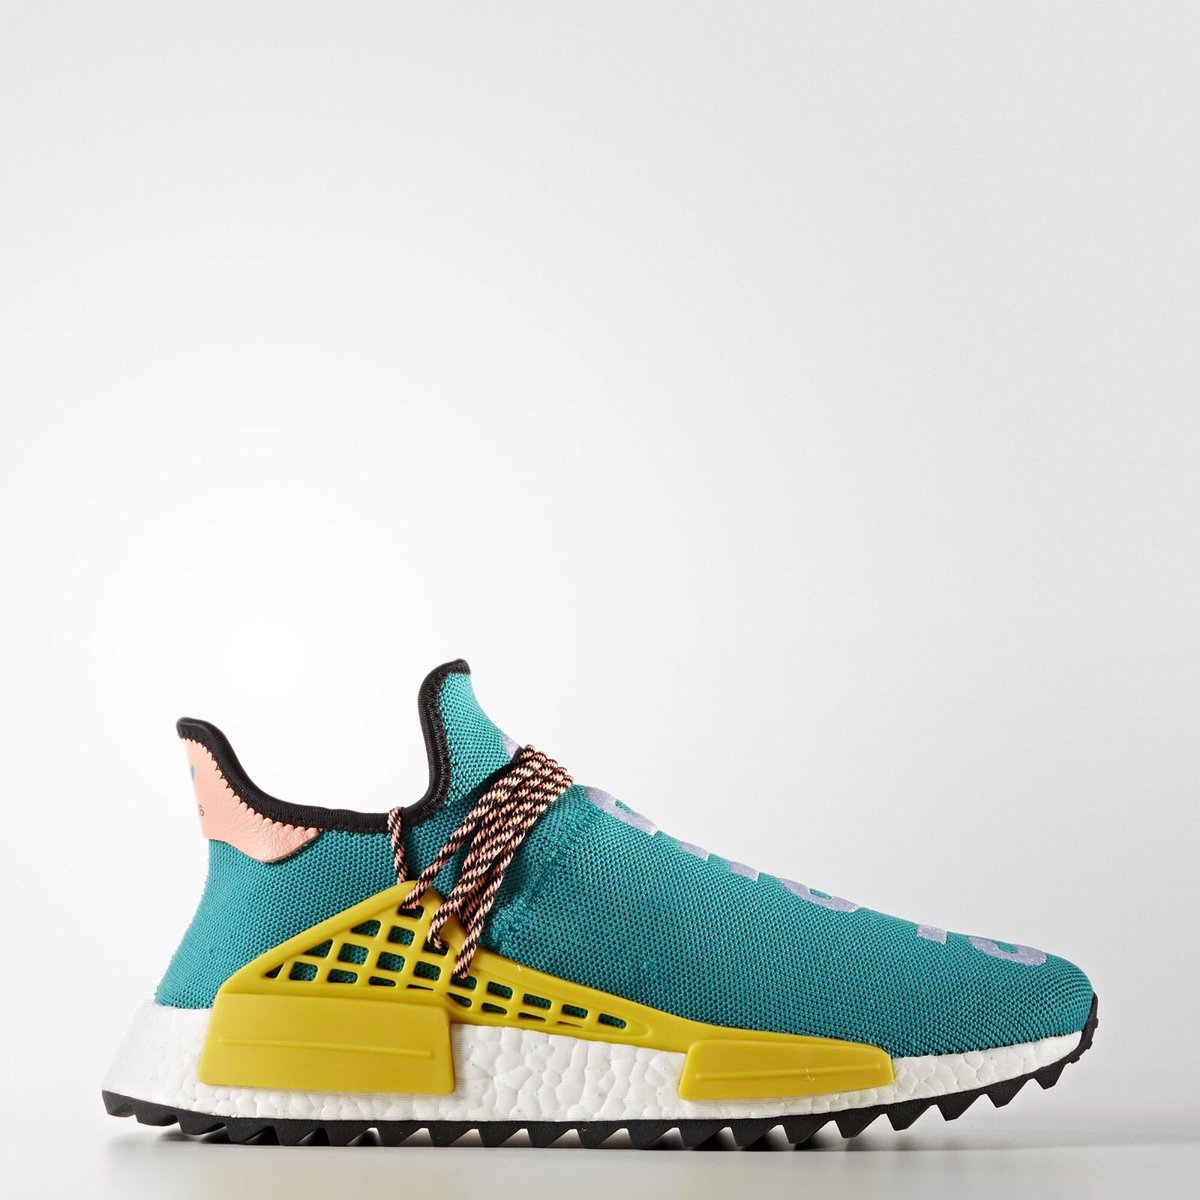 Adidas NMD HU Human Race Pharrell Williams Green BB0620 US